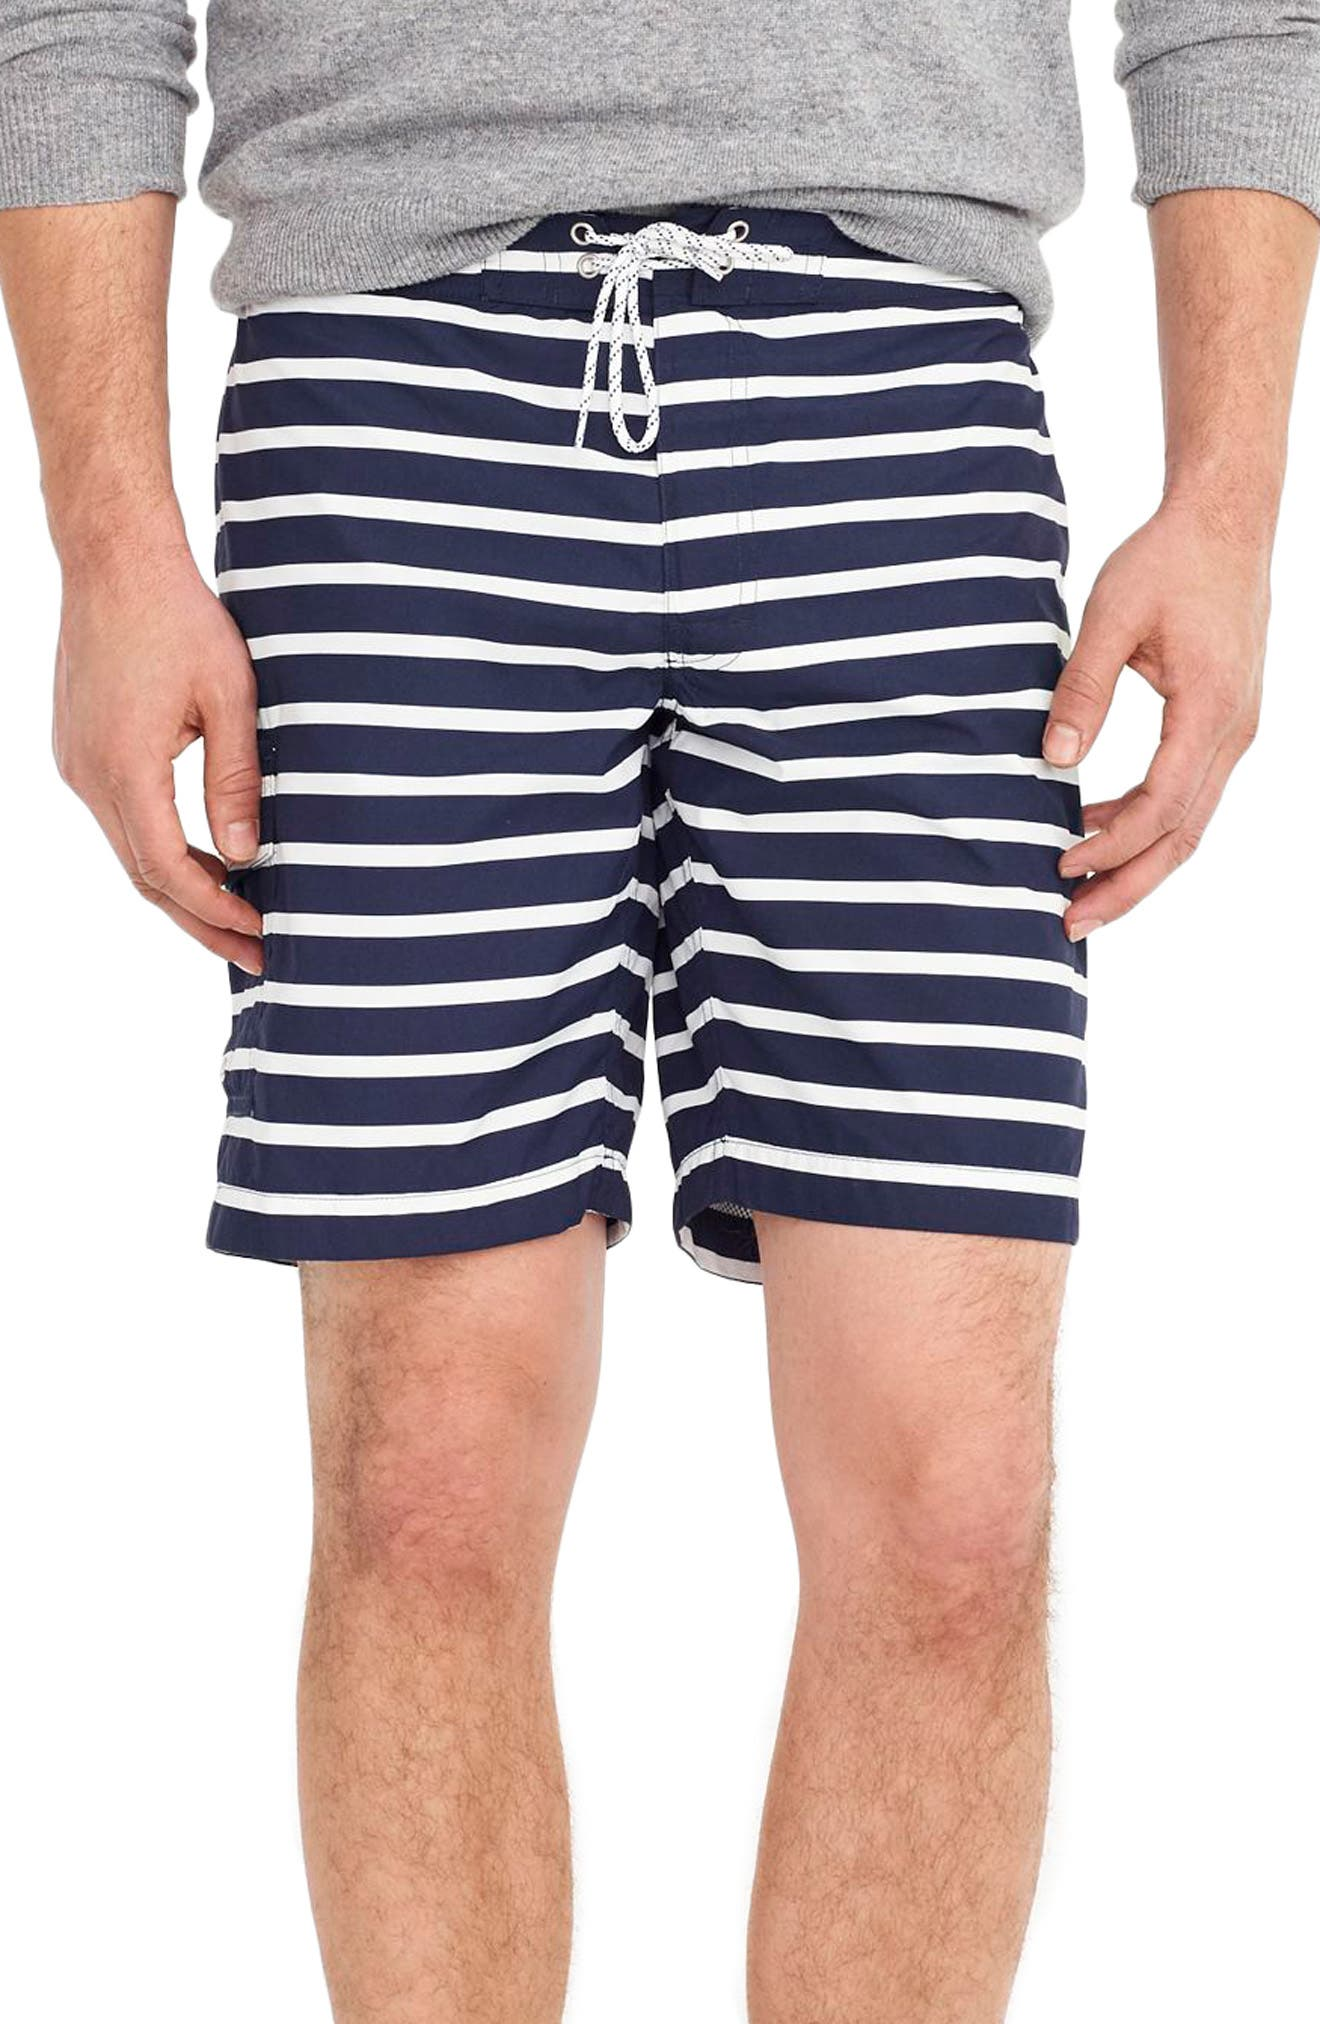 Stripe Swim Trunks,                             Main thumbnail 1, color,                             404